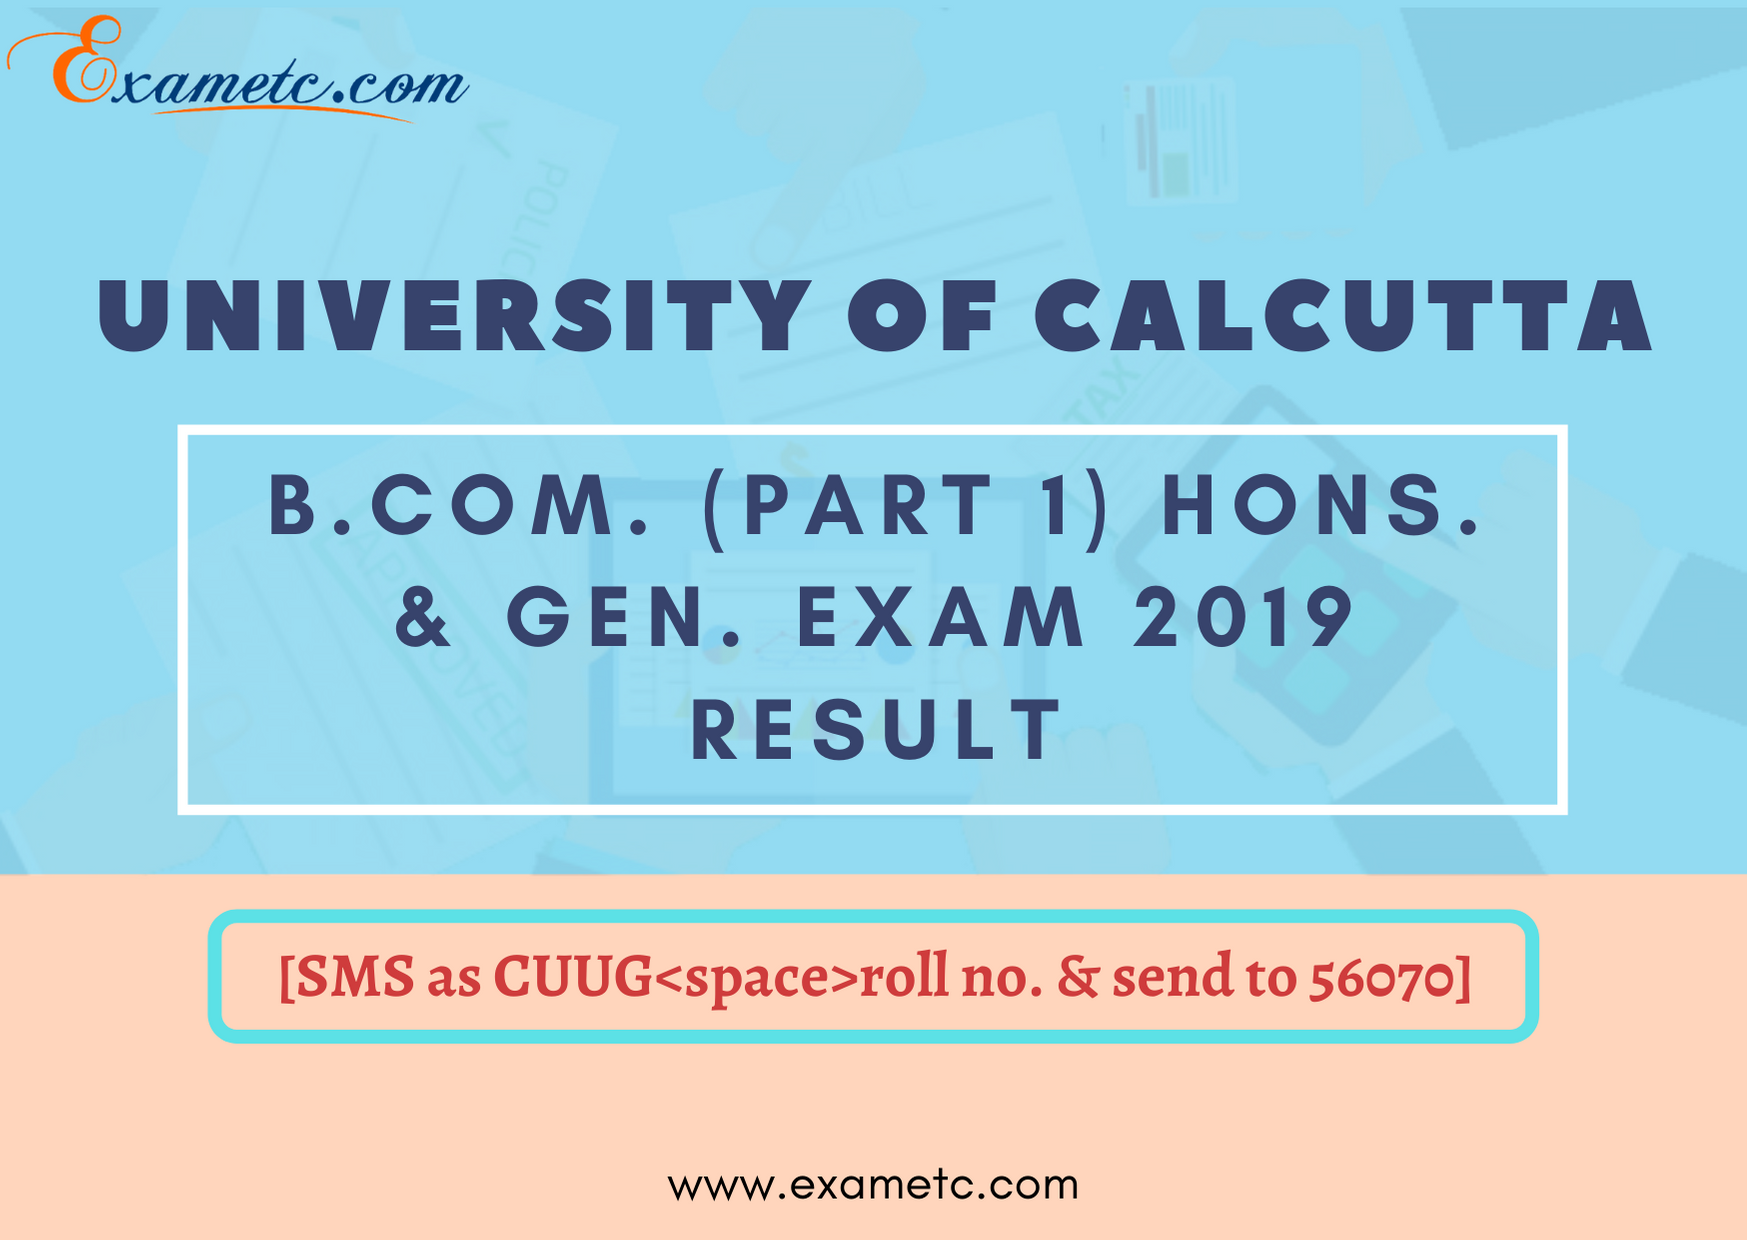 Calcutta University Exam Result 2019 in 2020